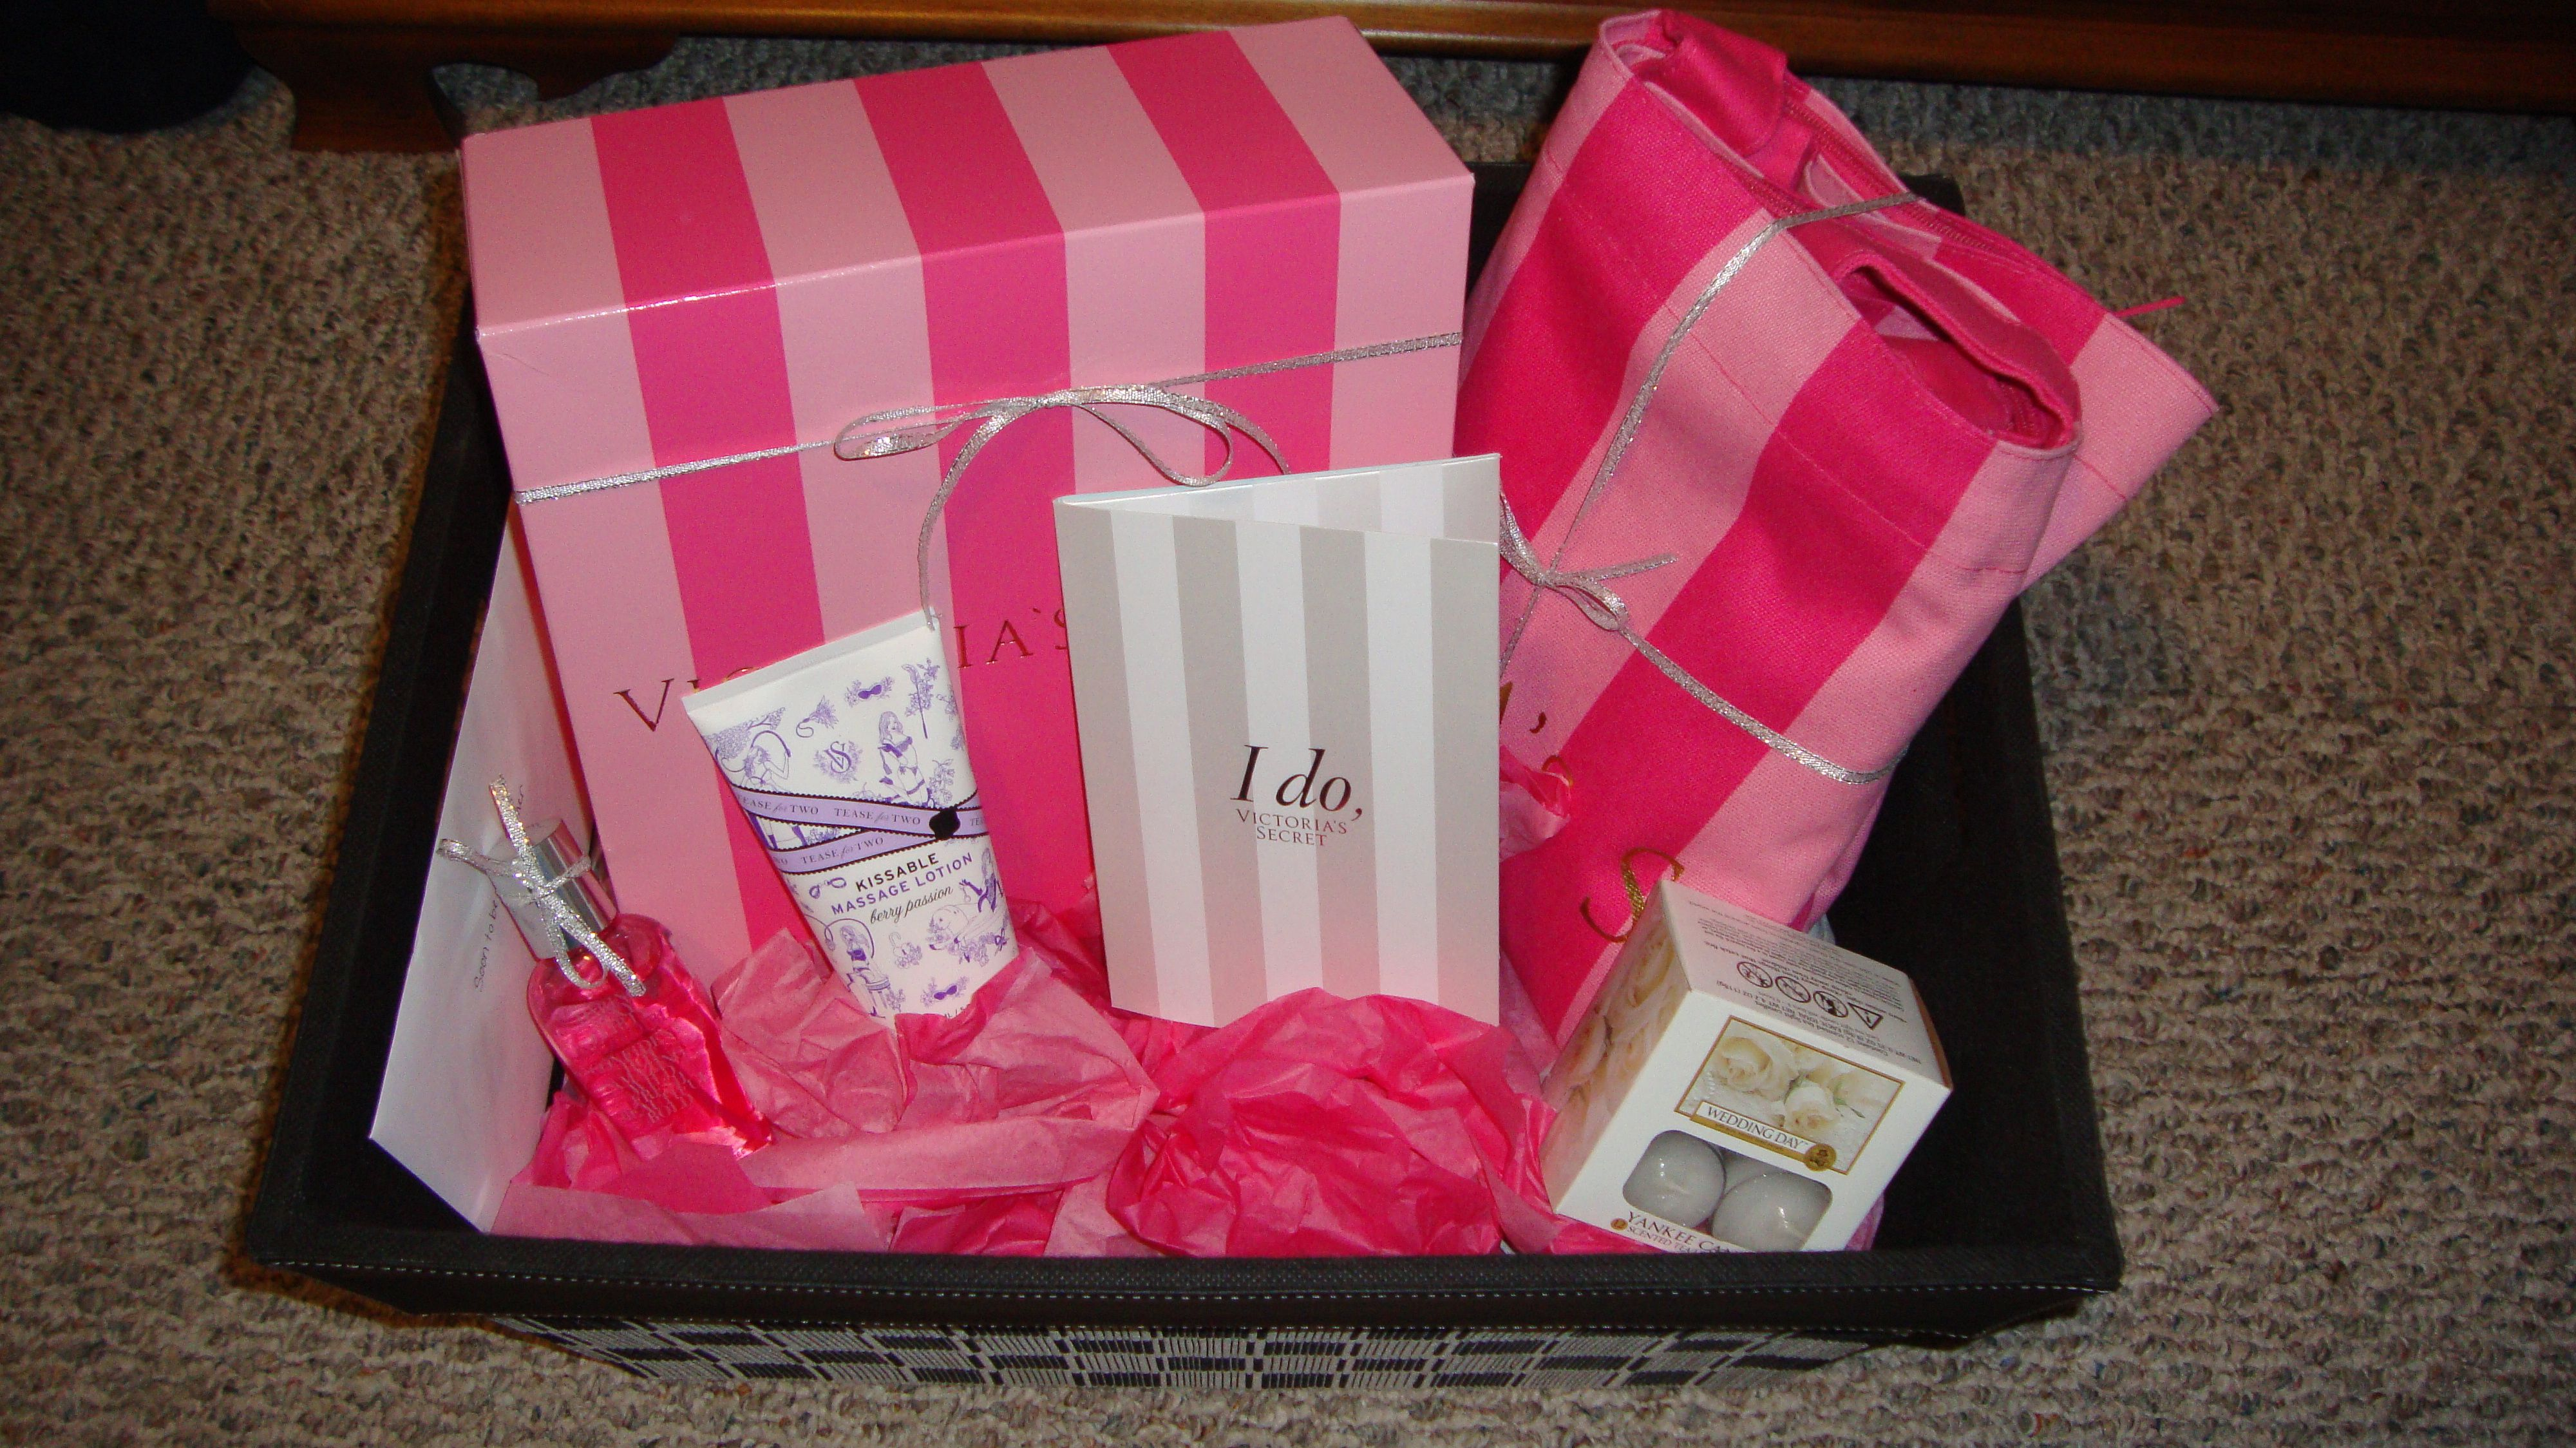 Wedding Shower Gift Themes: Bridal Shower Gift Idea! Inside The Victoria Secret Box